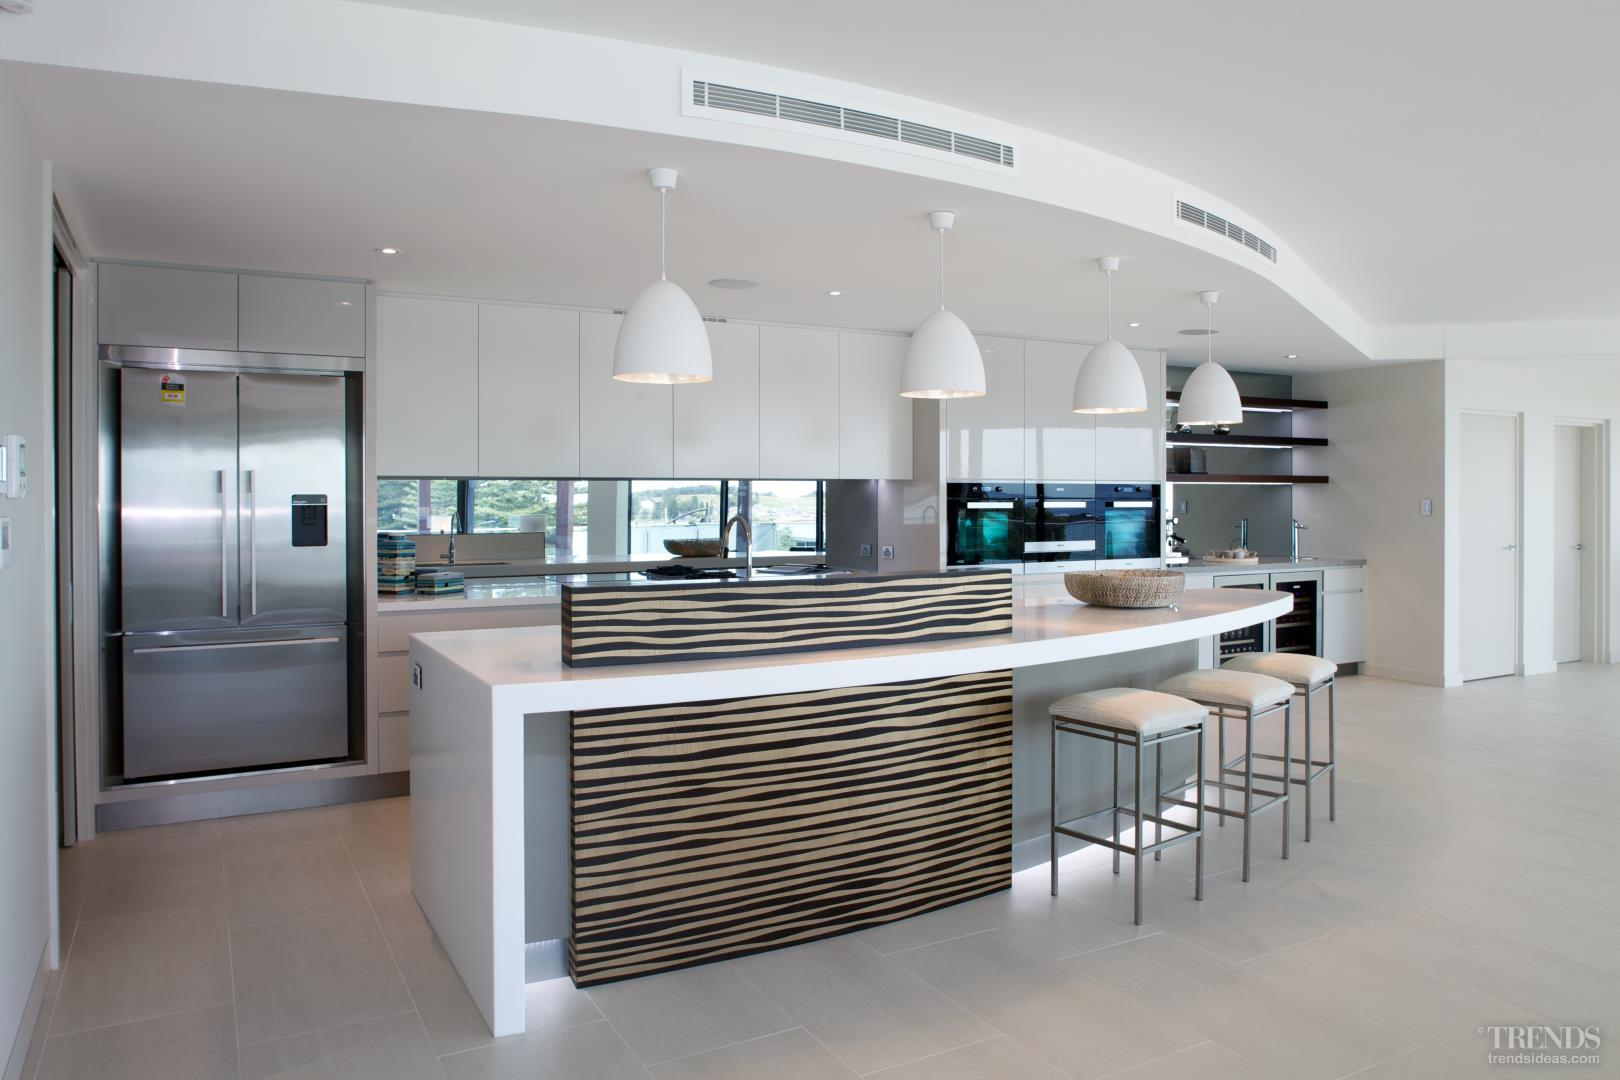 New penthouse kitchen with curved island and wood veneer upstand with metallic finish